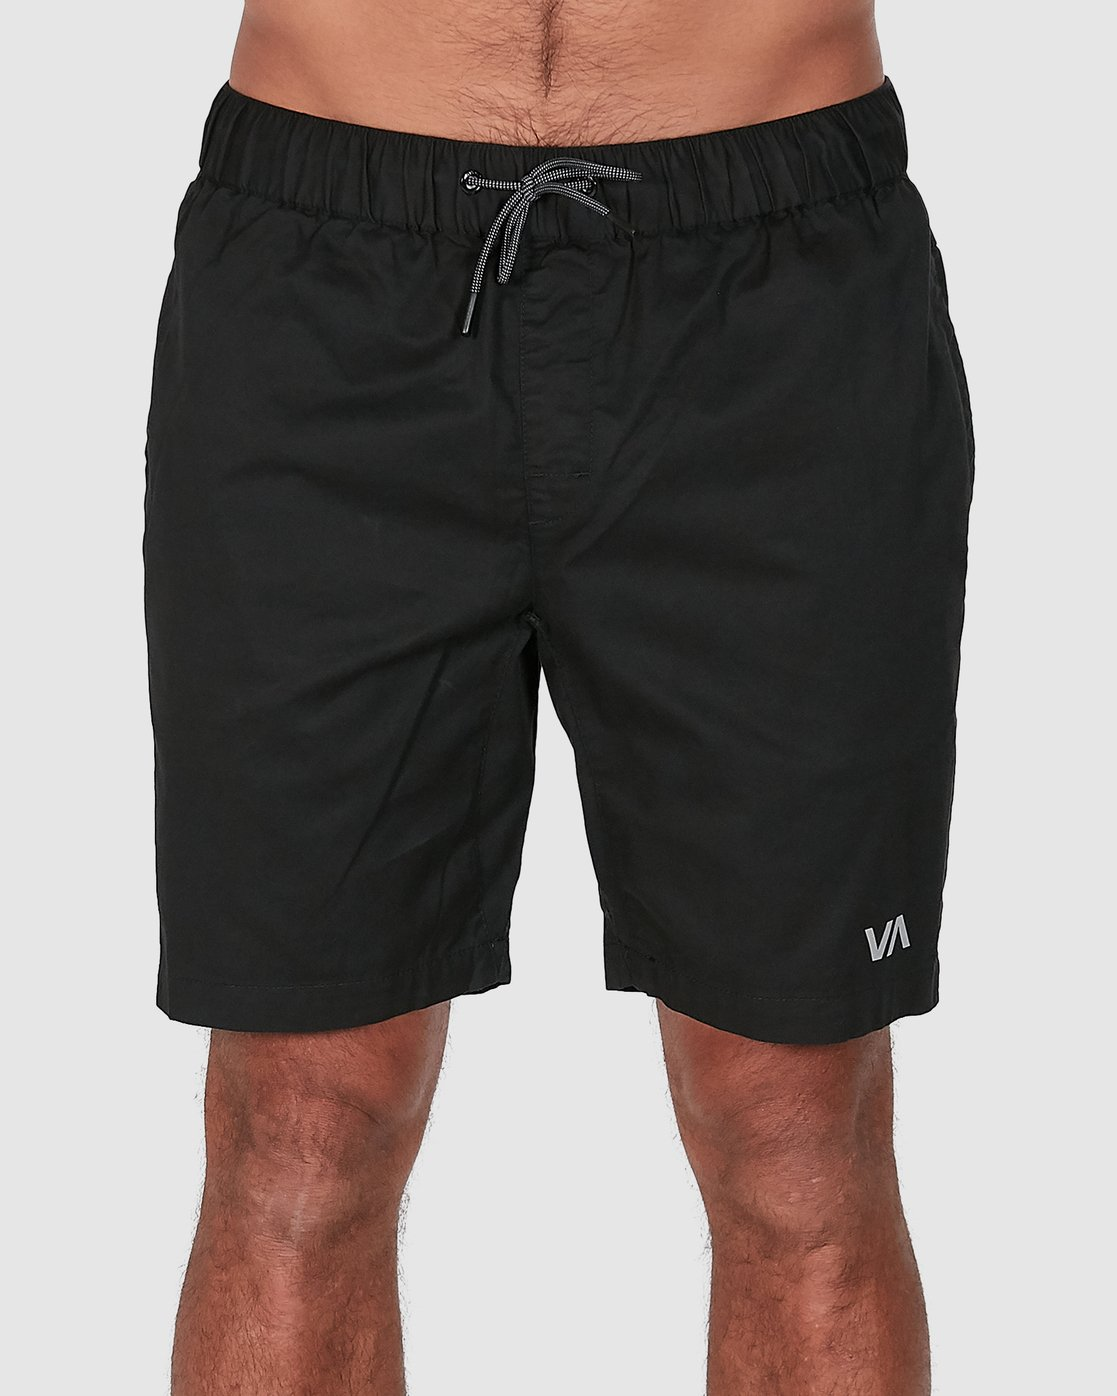 8 SPECTRUM SHORTS Black R107311 RVCA